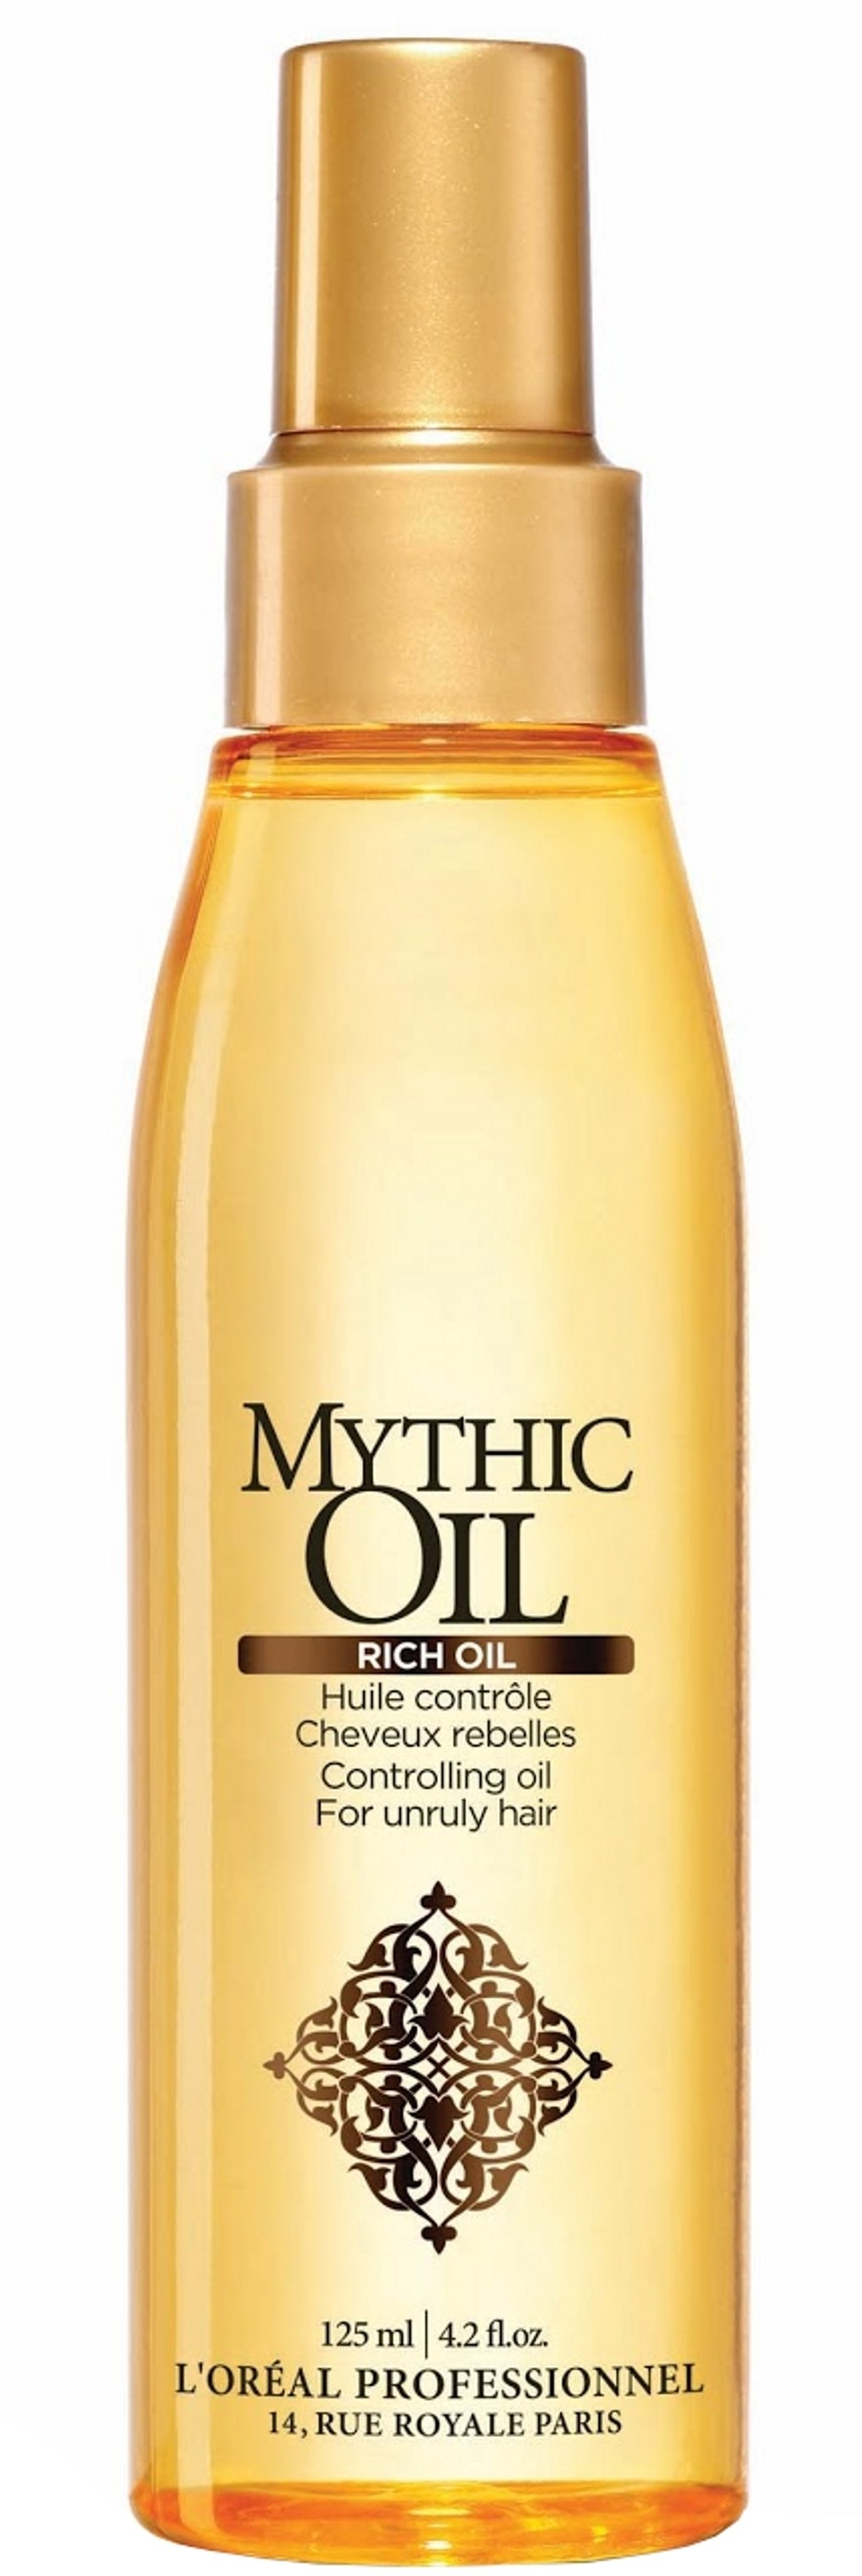 L`Orеal Professionnel Mythic Rich Oil восстанавливает волосы